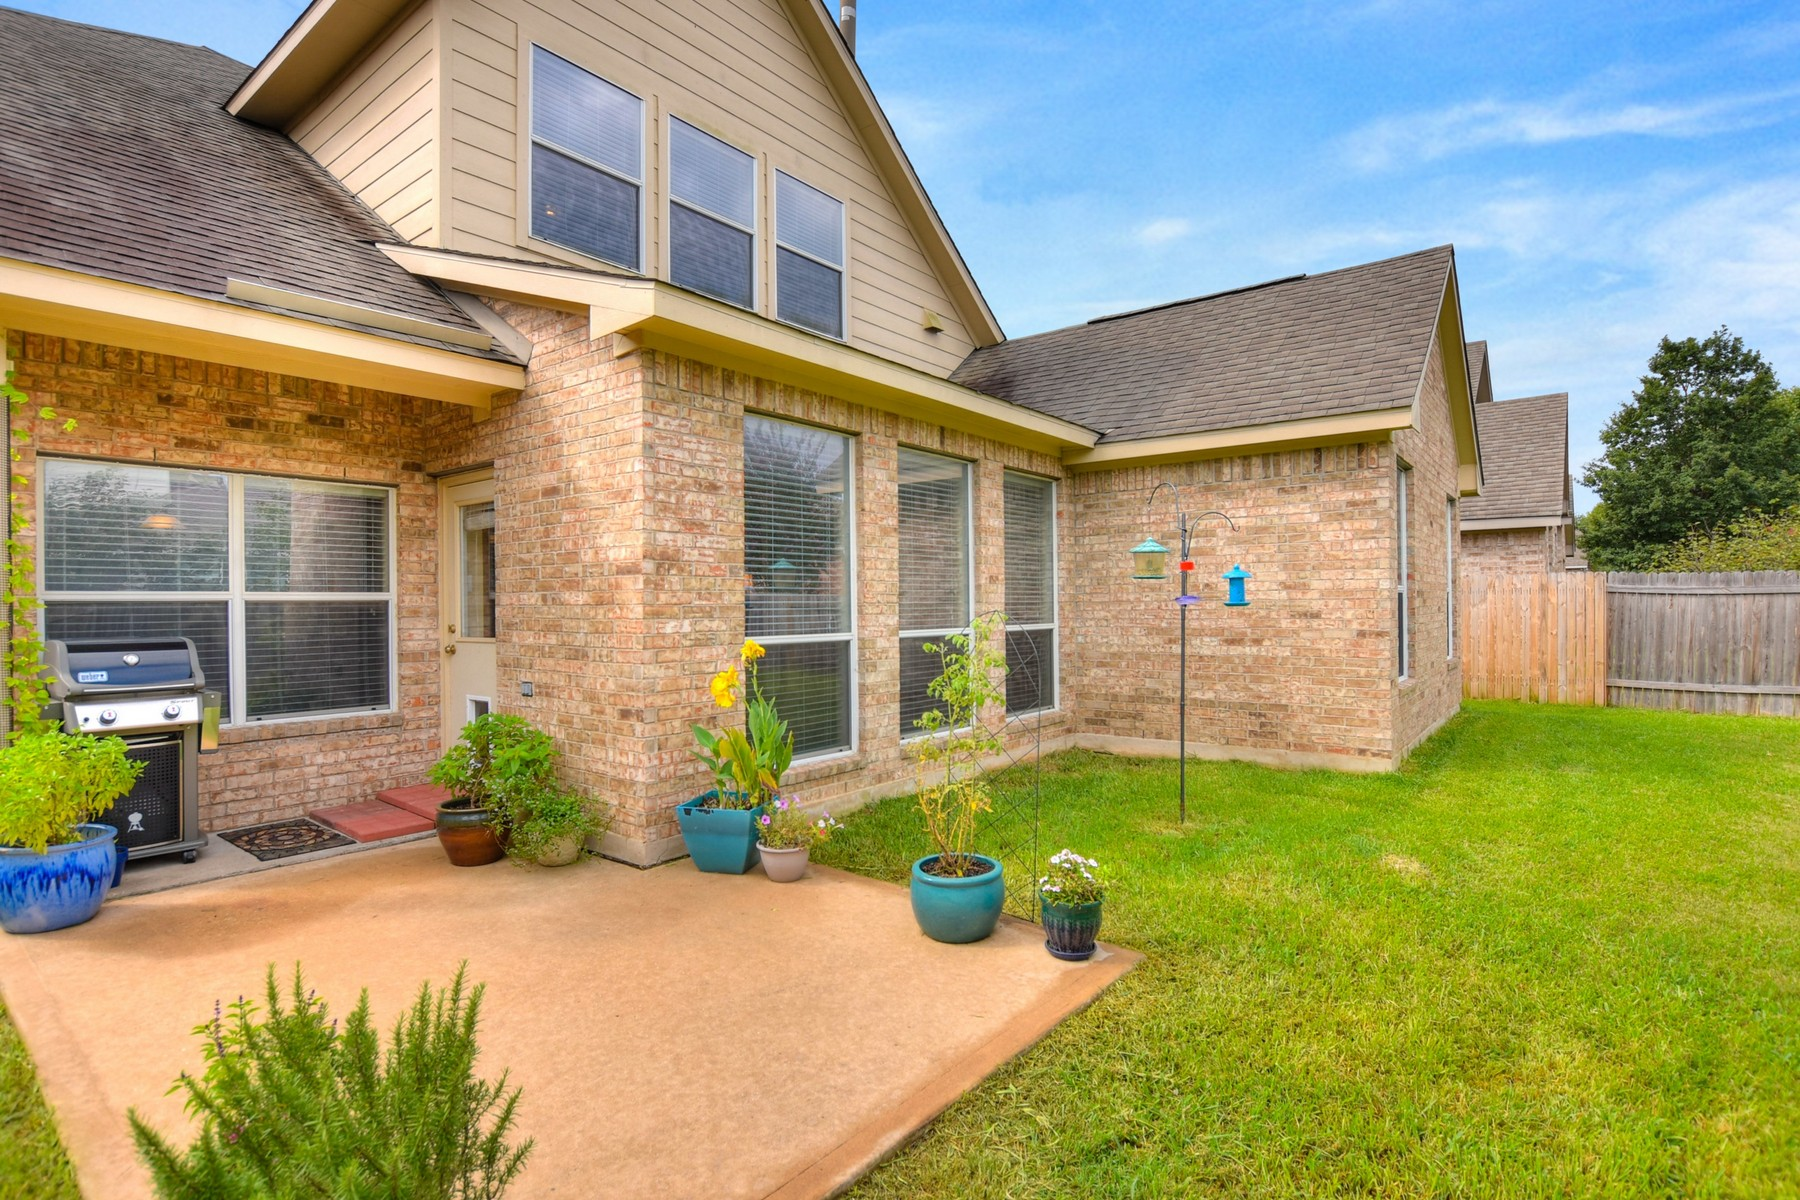 Additional photo for property listing at Spacious Home Loaded with Charm and Character 1817 Nelson Ranch Loop Cedar Park, Texas 78613 United States